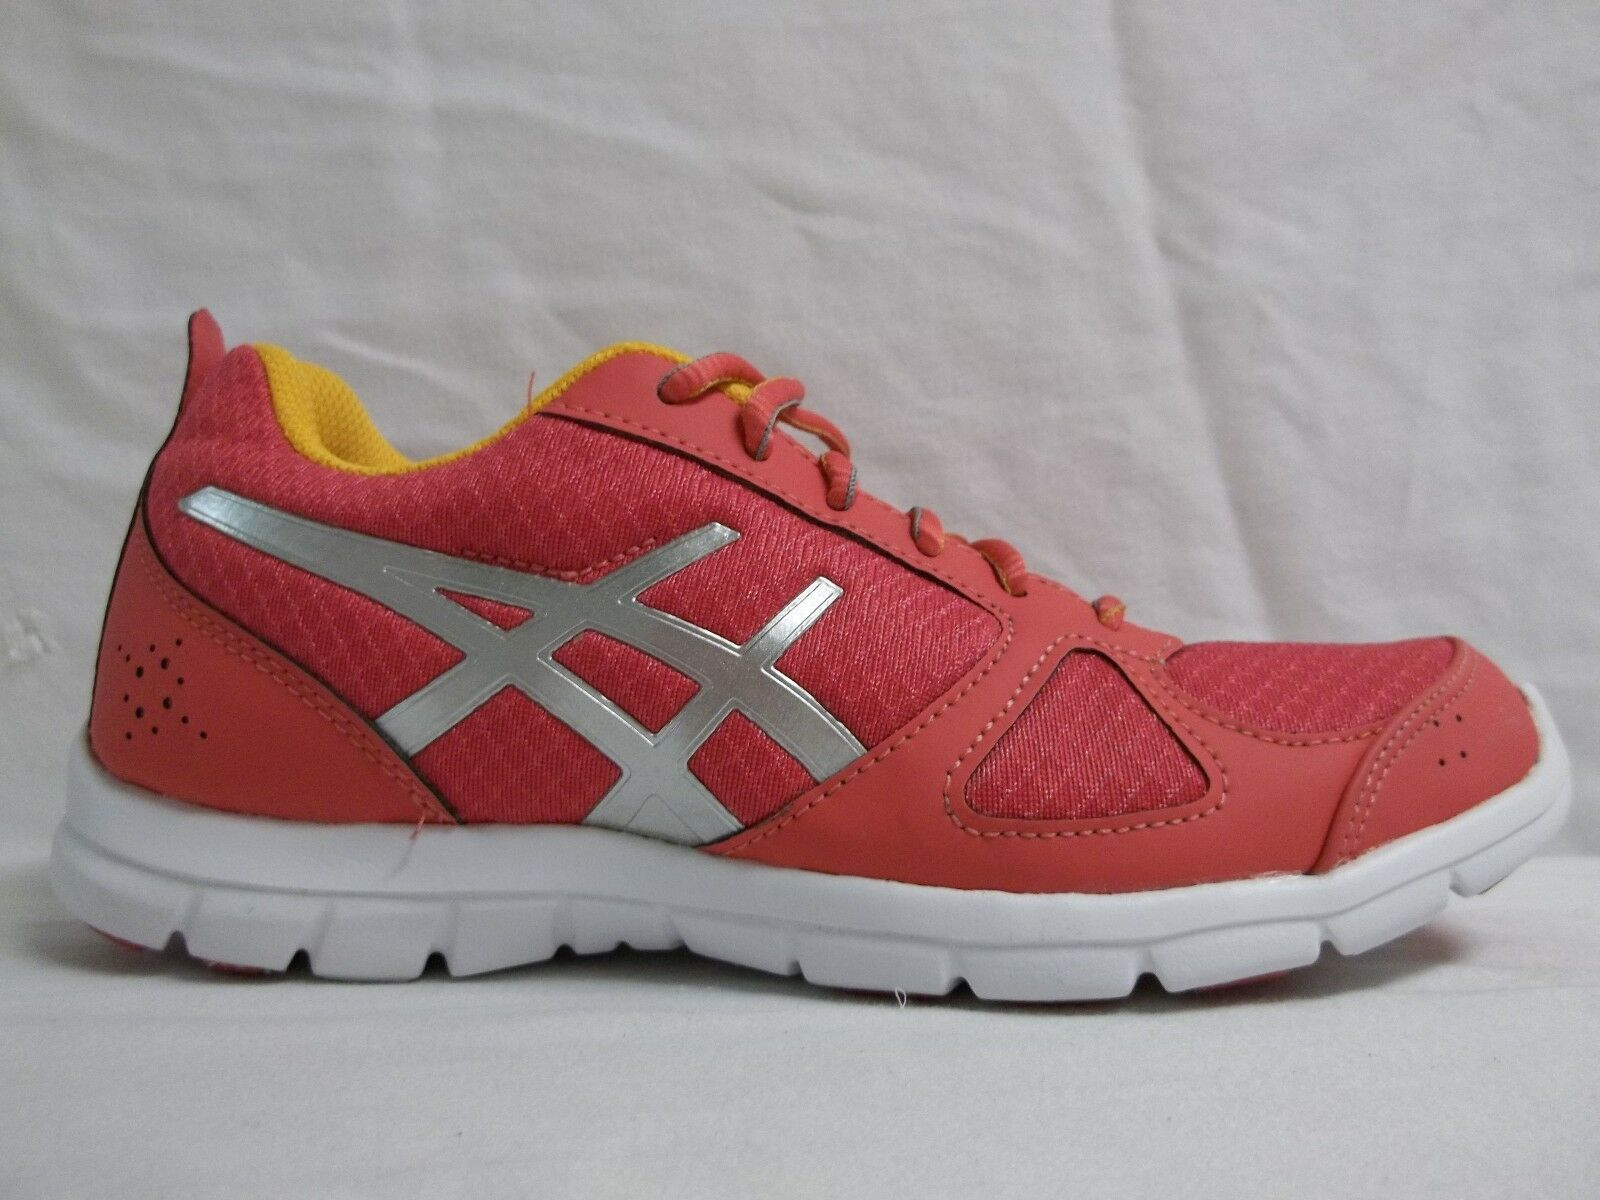 Asics Size 5 M Gel Muse Fit Raspberry Running Sneakers New Womens shoes NWOB